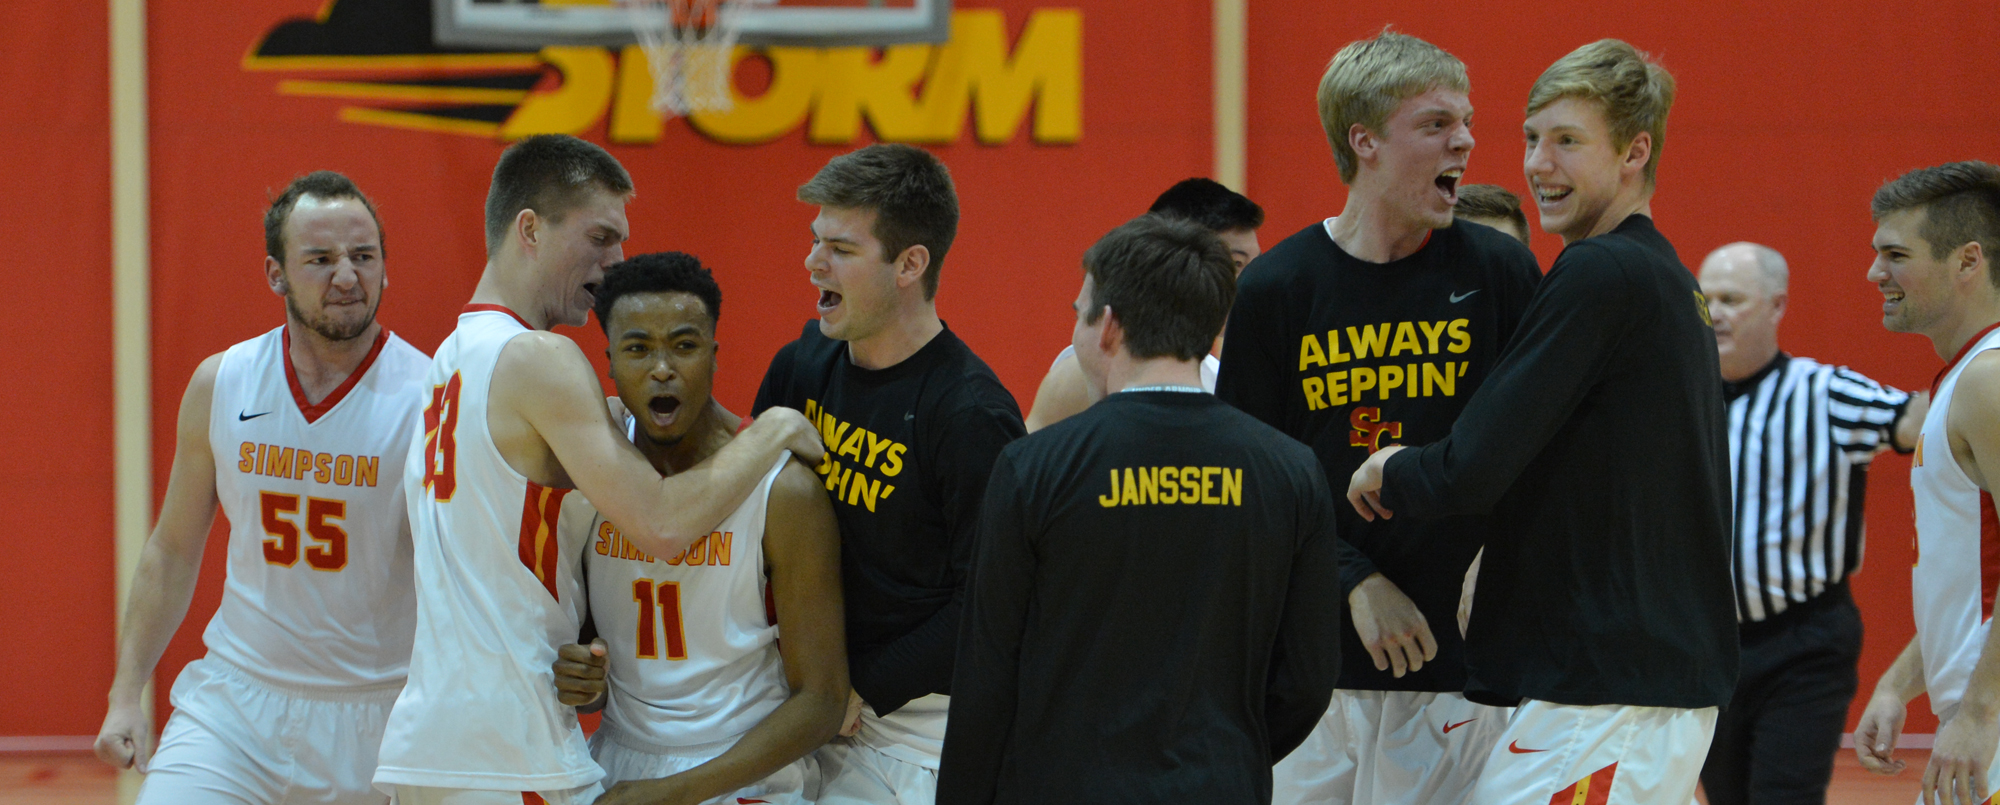 Simpson came back from 12 down to beat Central 64-63 on Wednesday.